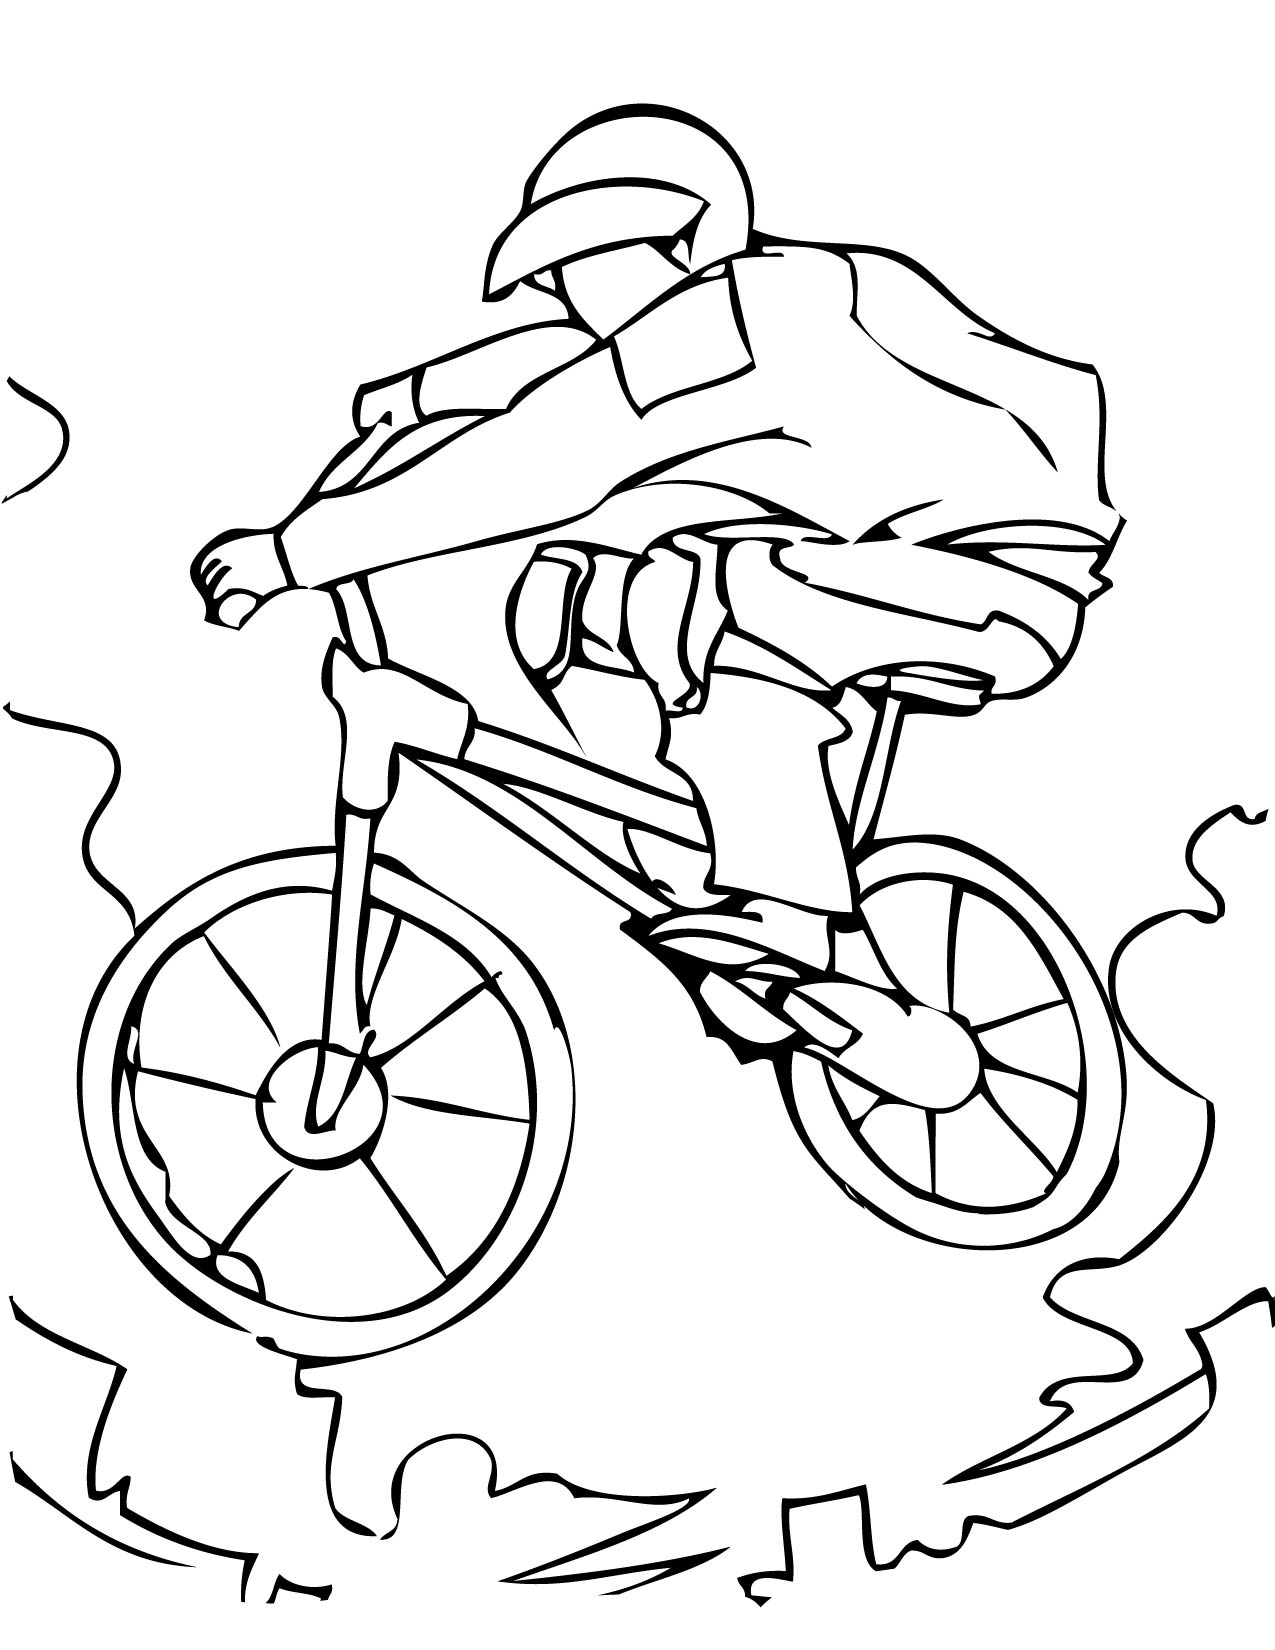 sports colouring pictures 19 basketball coloring pages pdf jpeg png free sports pictures colouring